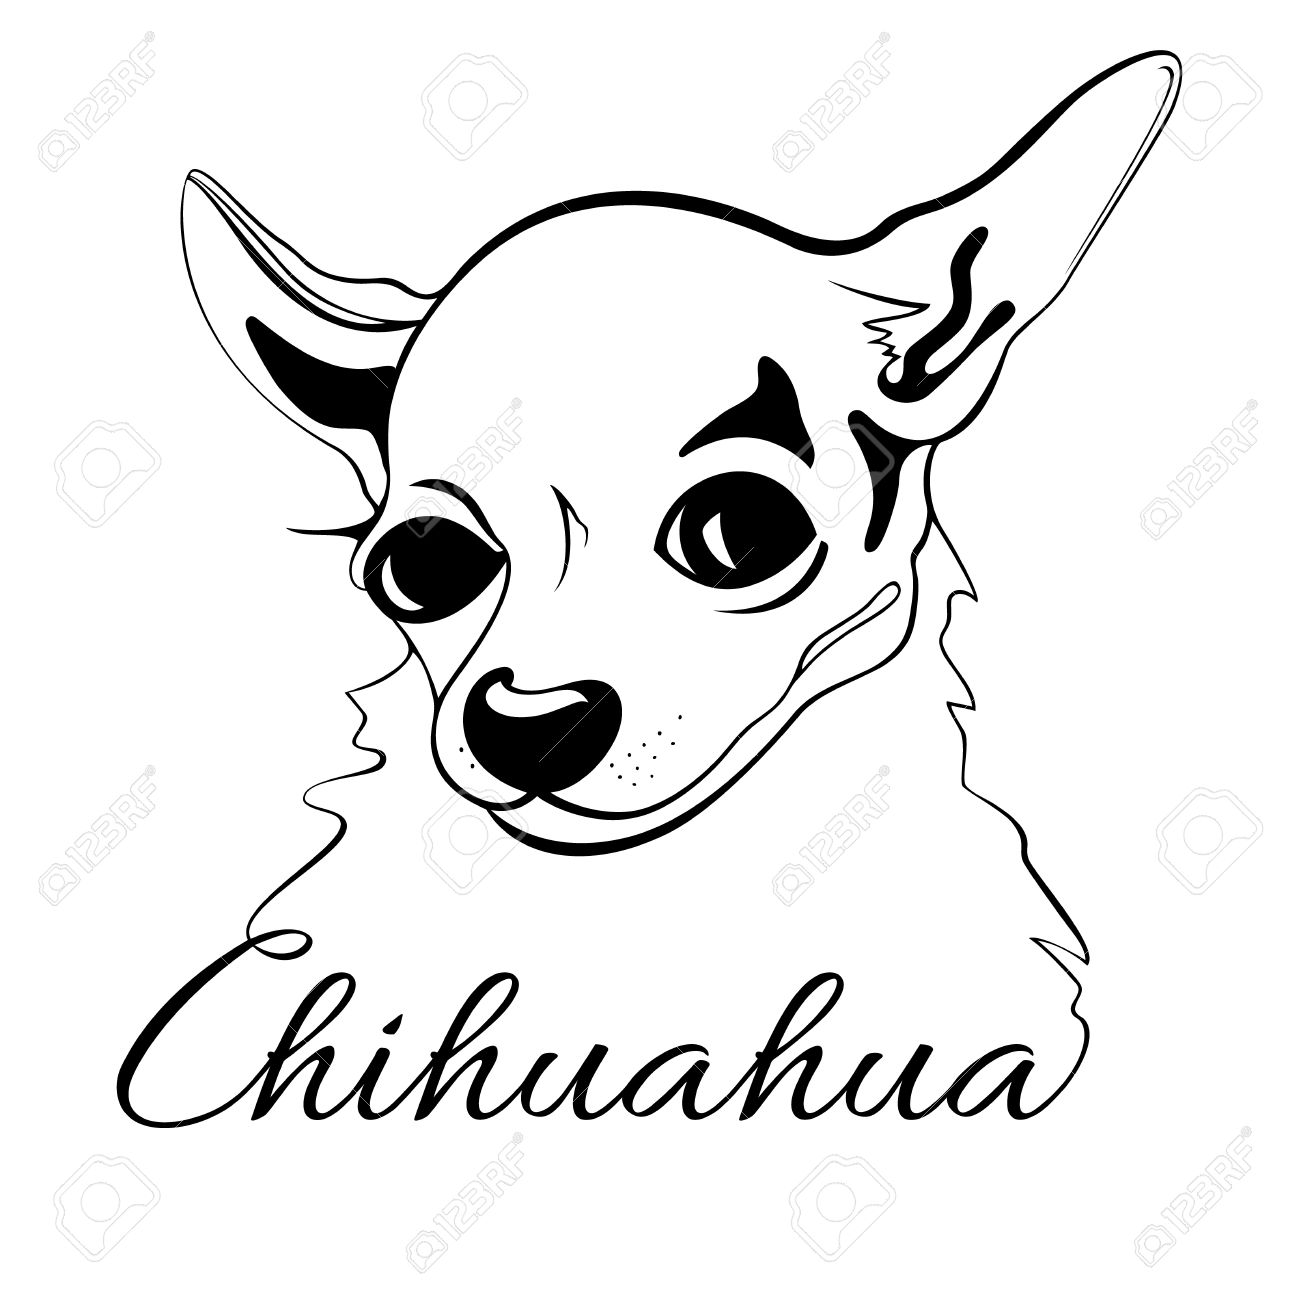 Cute Chihuahua Drawing at GetDrawings.com | Free for personal use ...